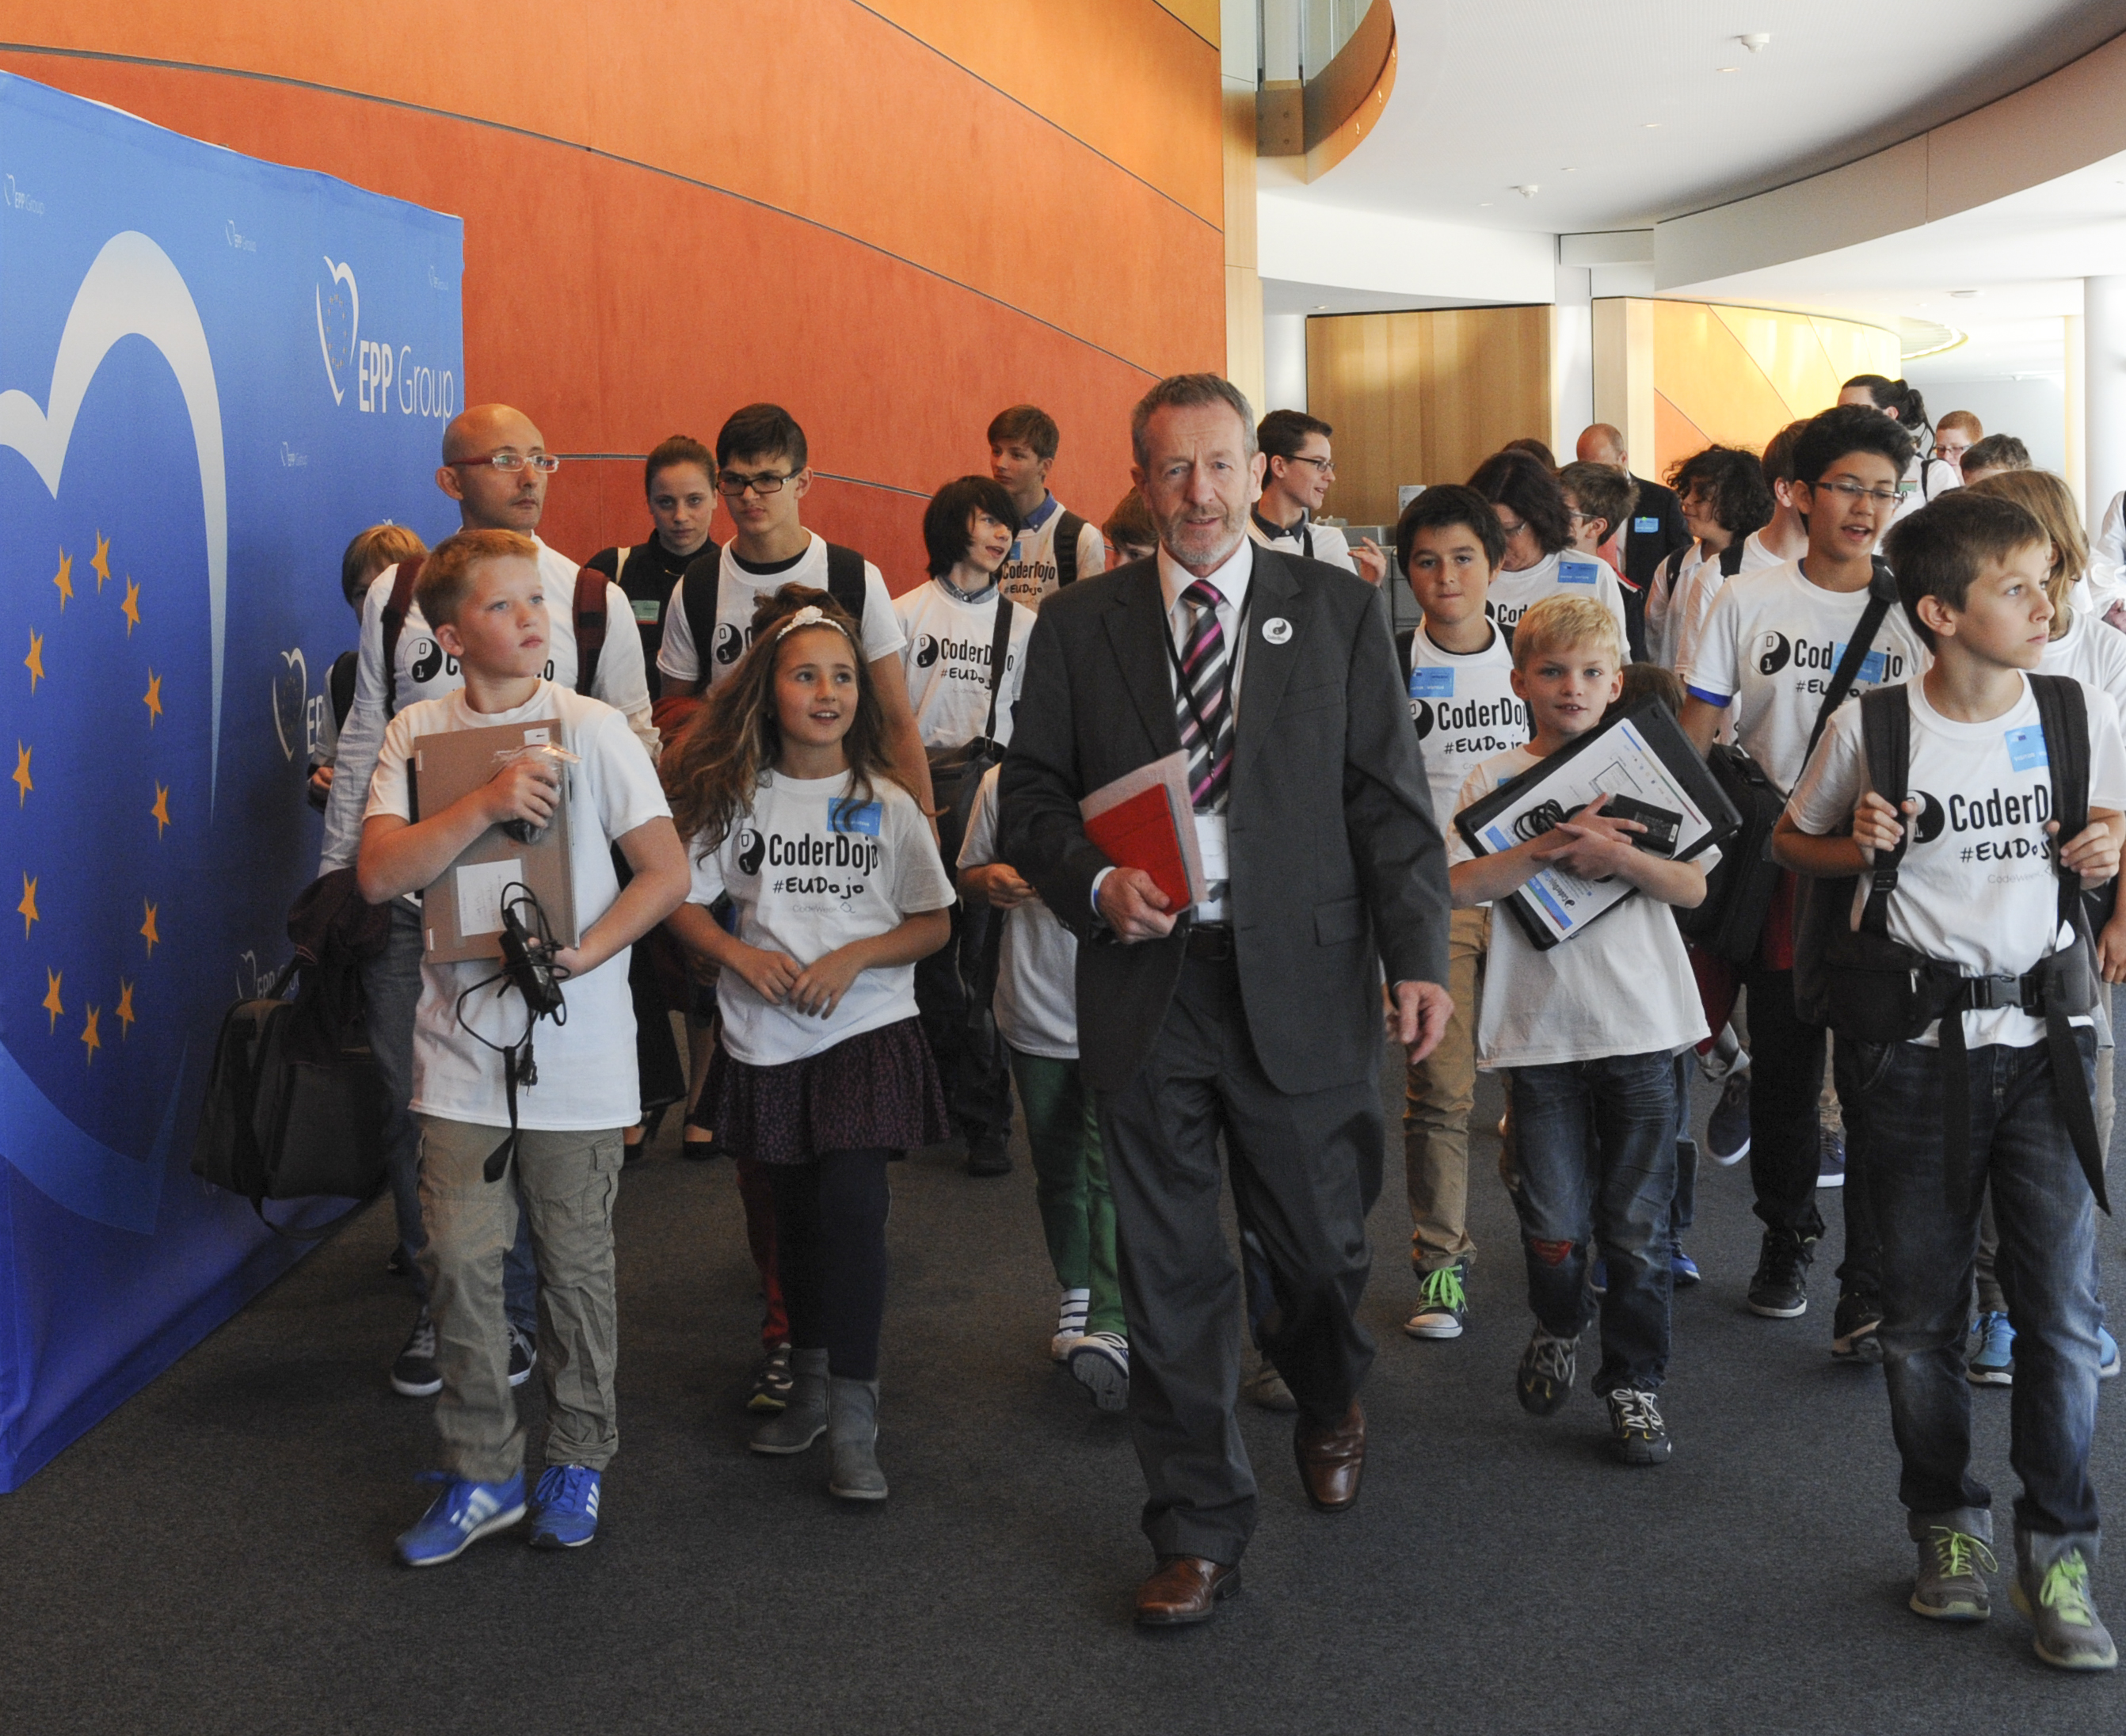 Irish MEP Sean Kelly (EPP) with children at the Coder Dojo in European Parliament